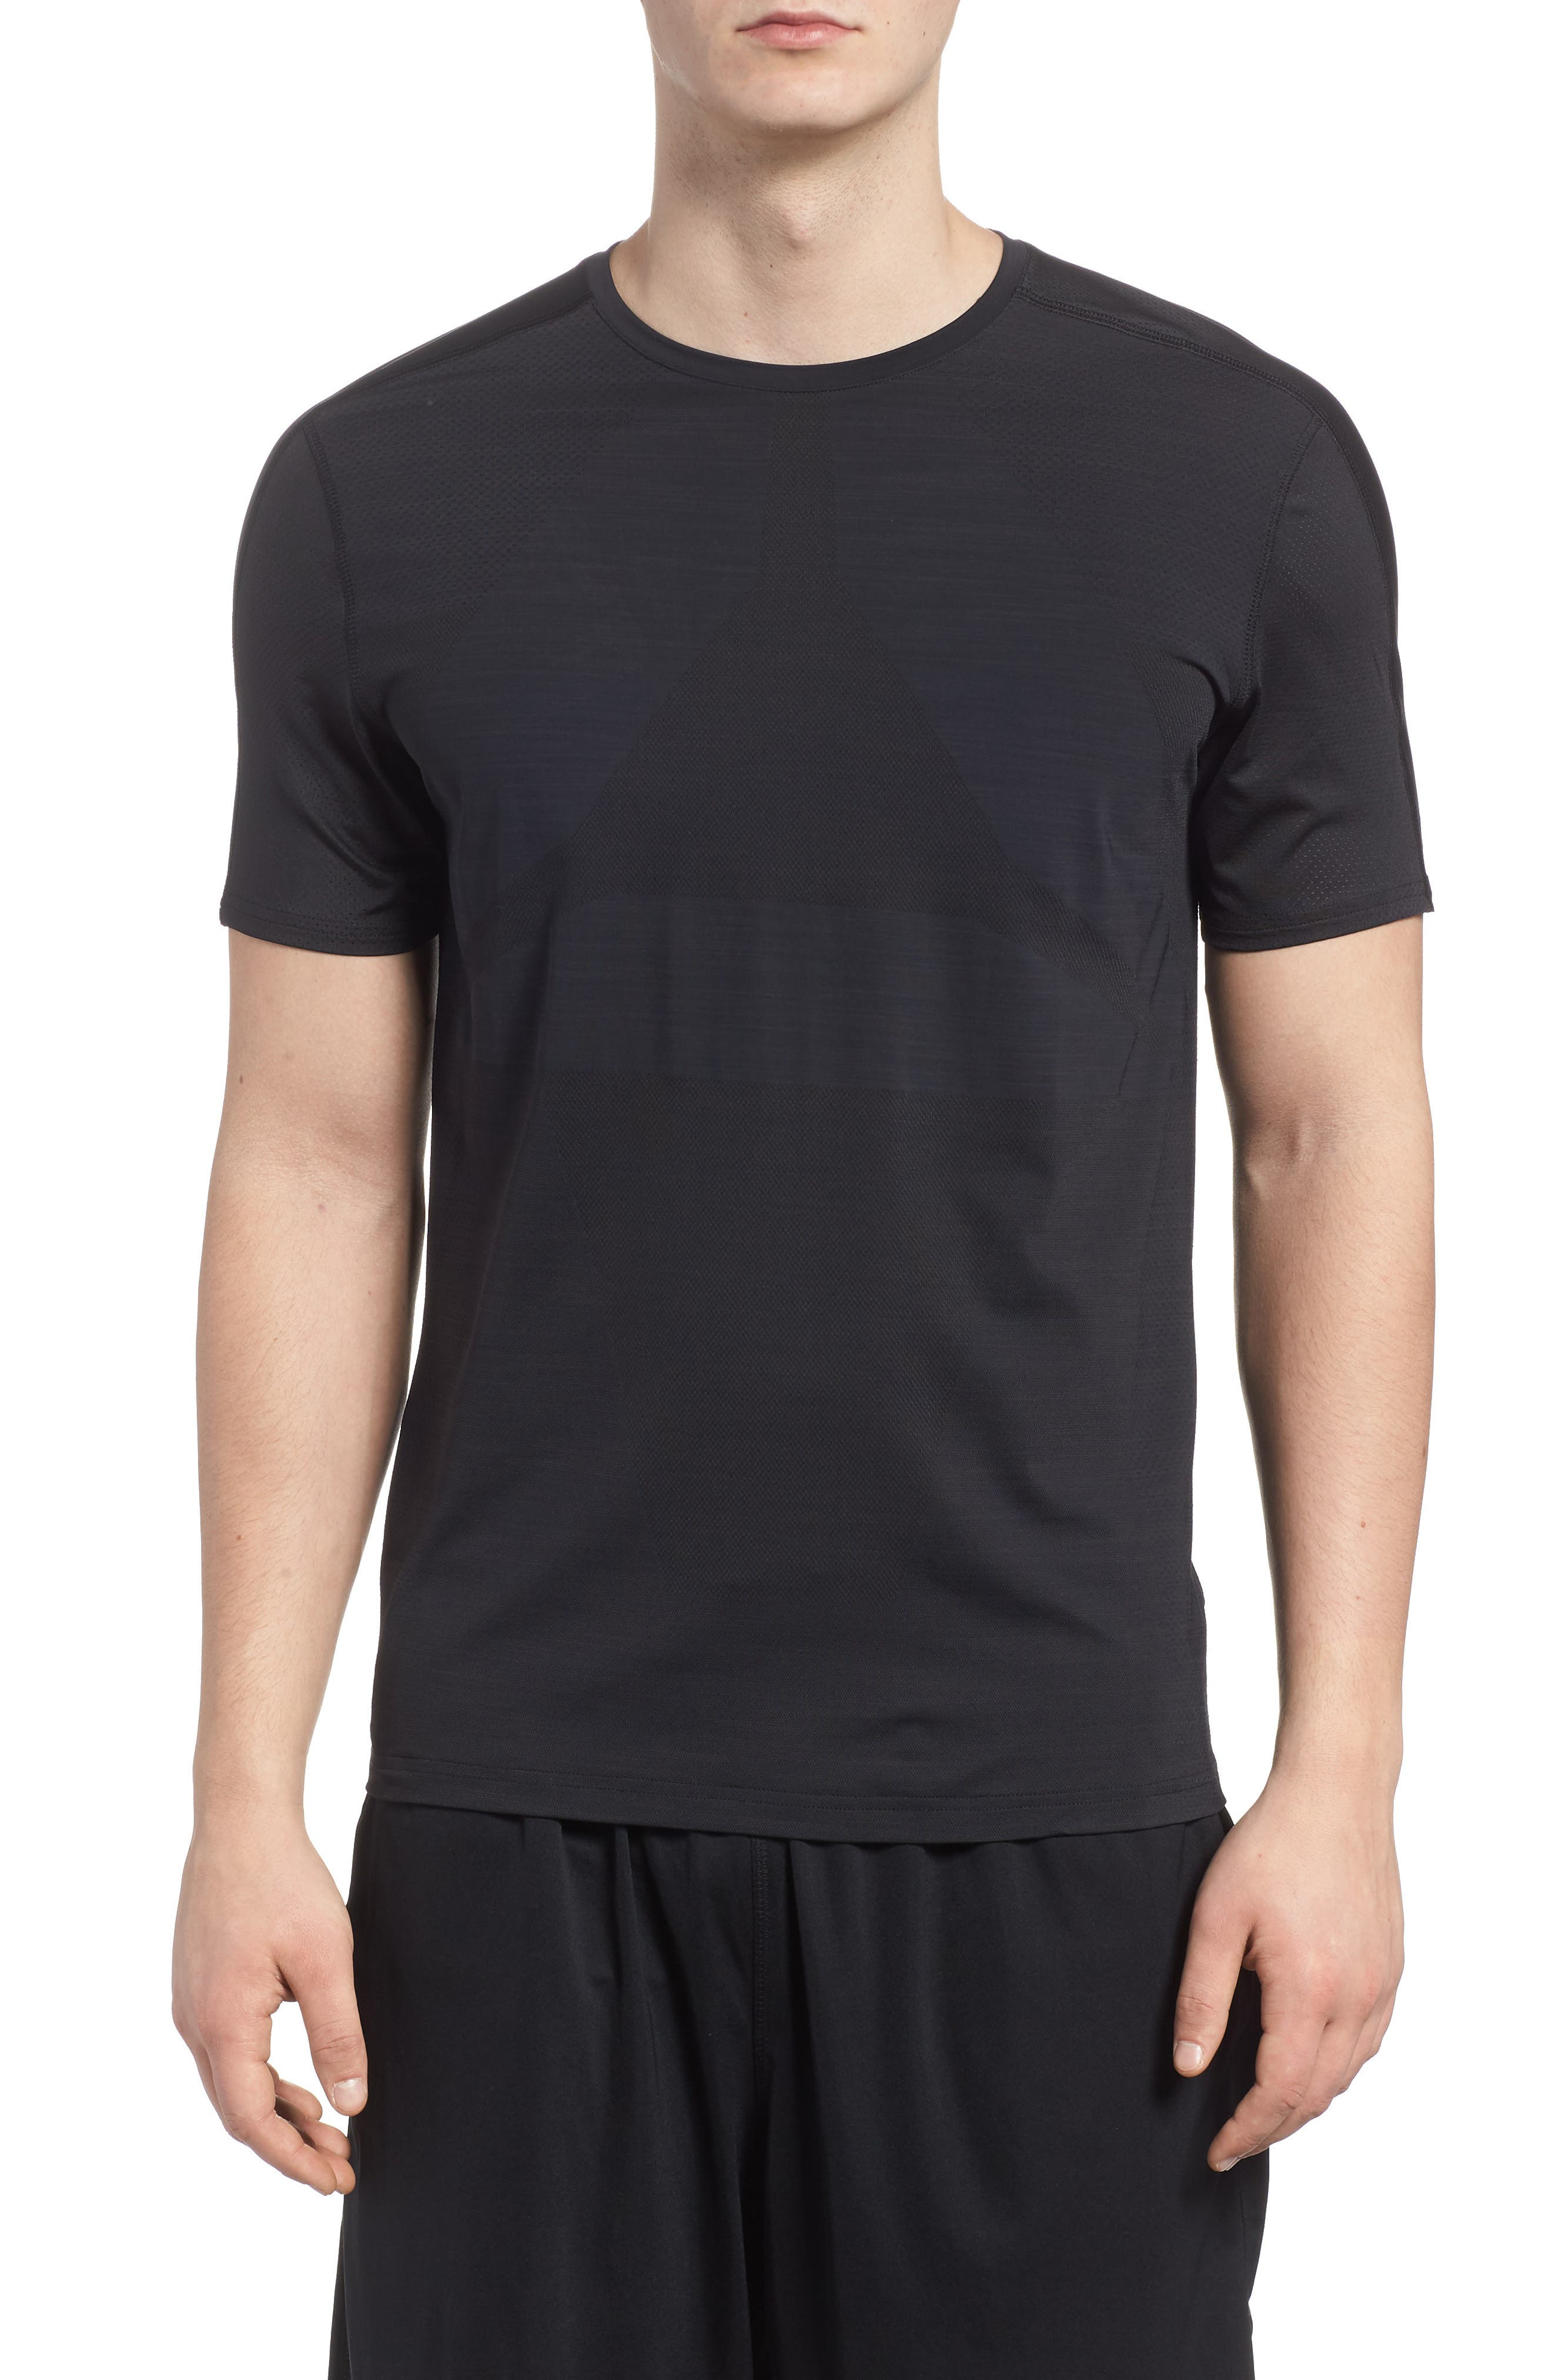 ACTIVCHILL Vent Move Crewneck T-Shirt,                         Main,                         color, Black